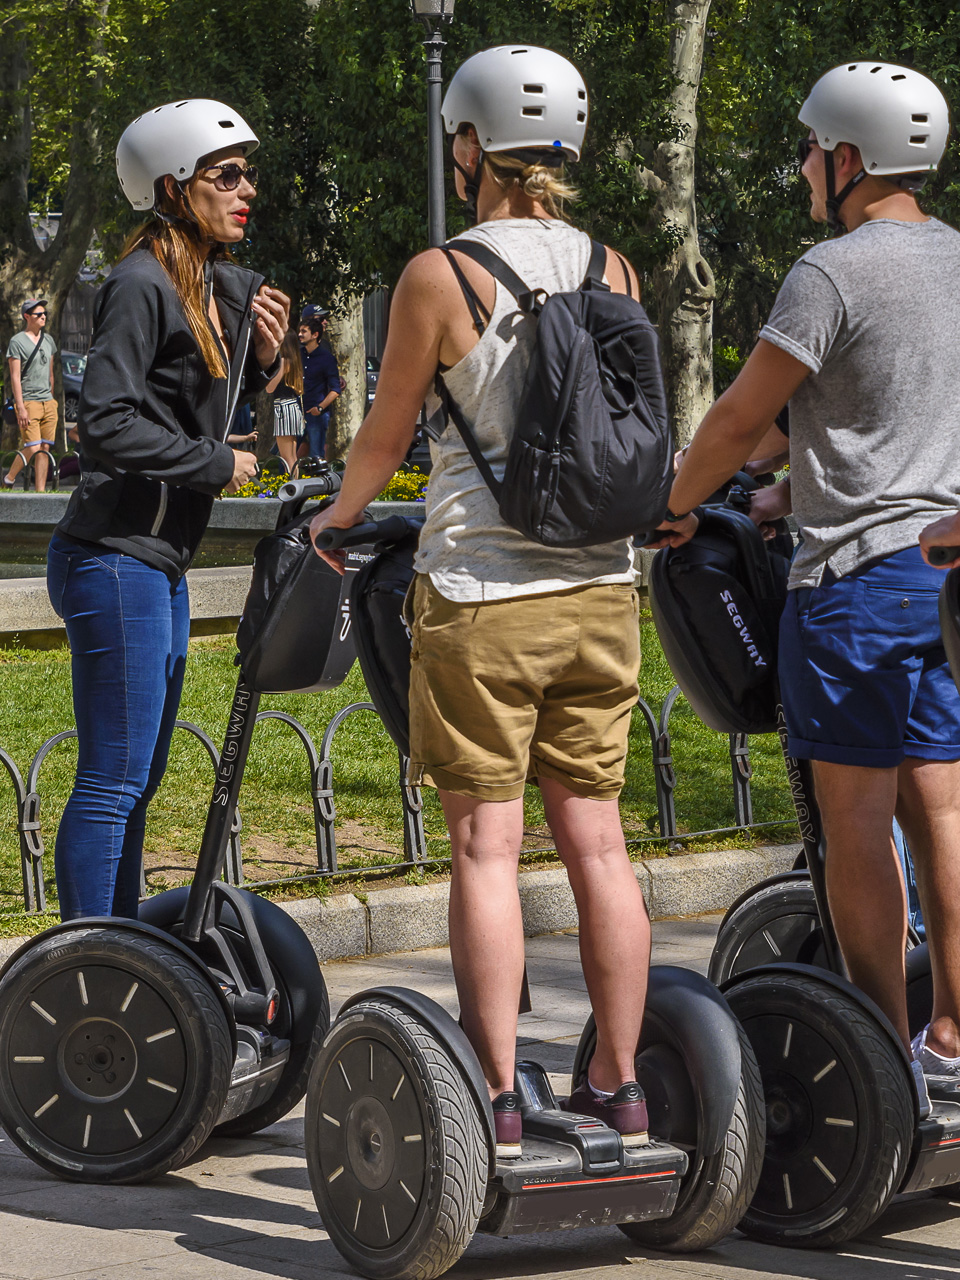 Afternoon Segway Adventure Ride - Starts at 3:30pm